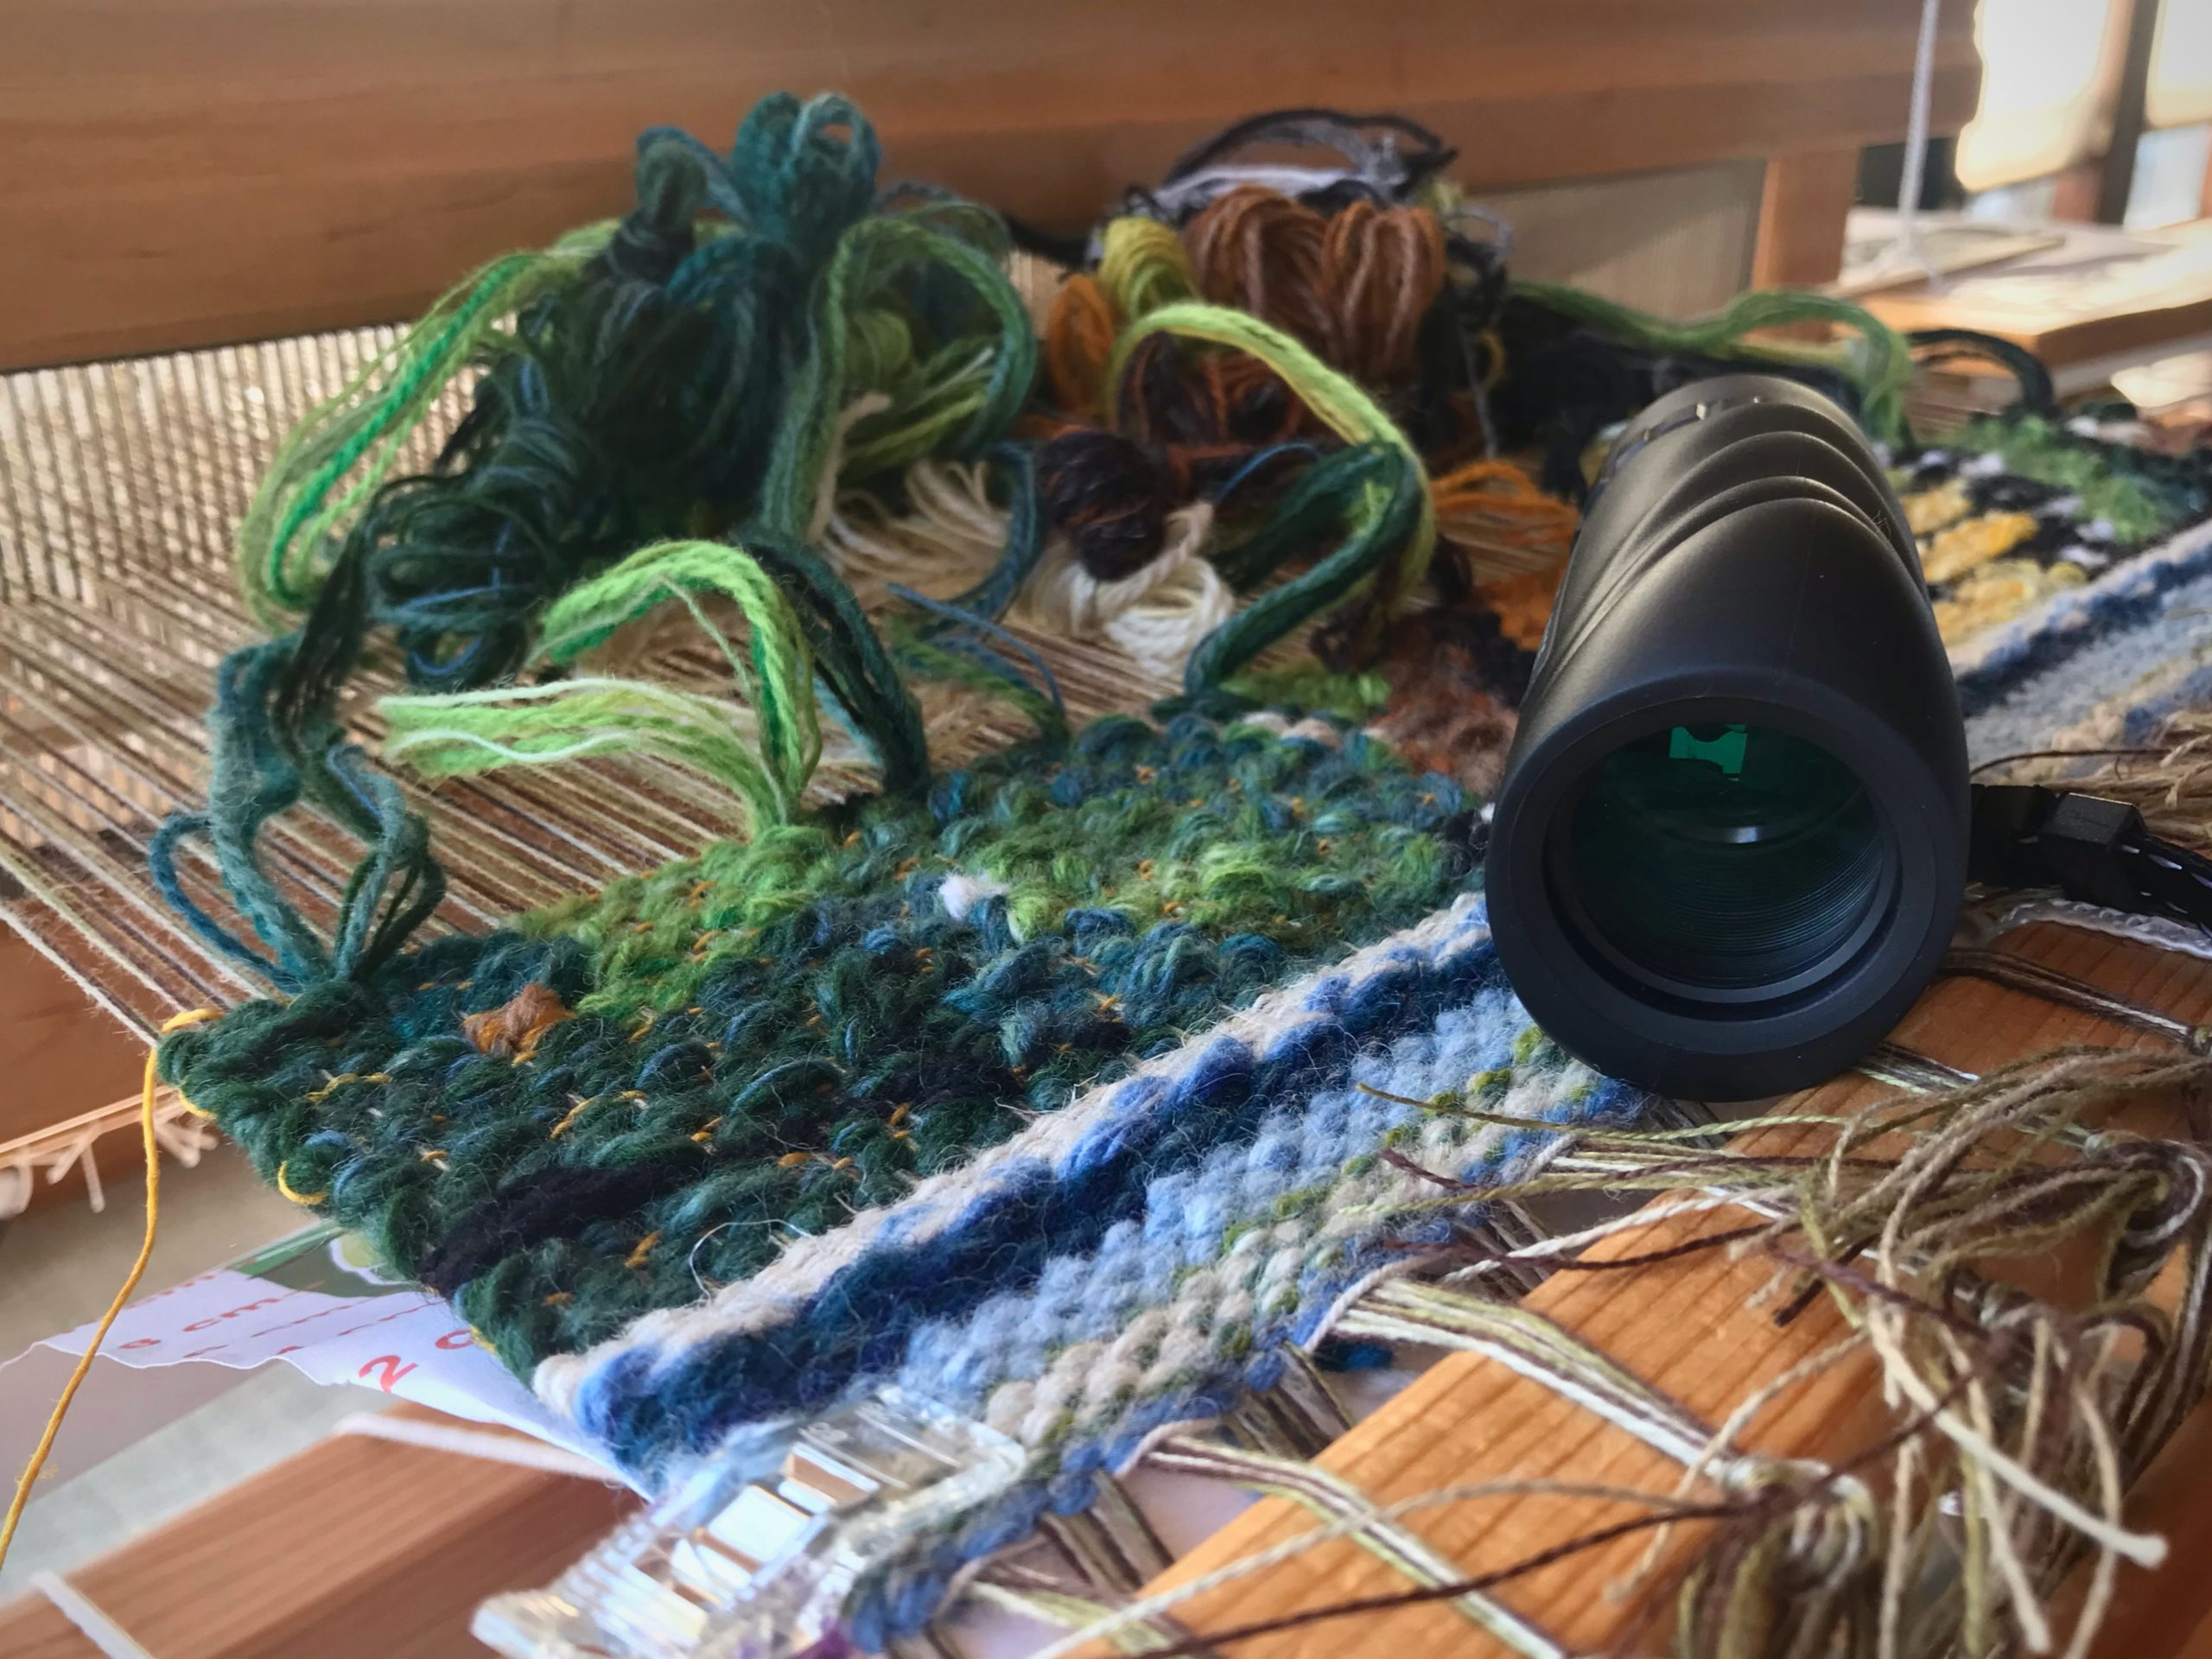 Tapestry on the floor loom, and how to view it.